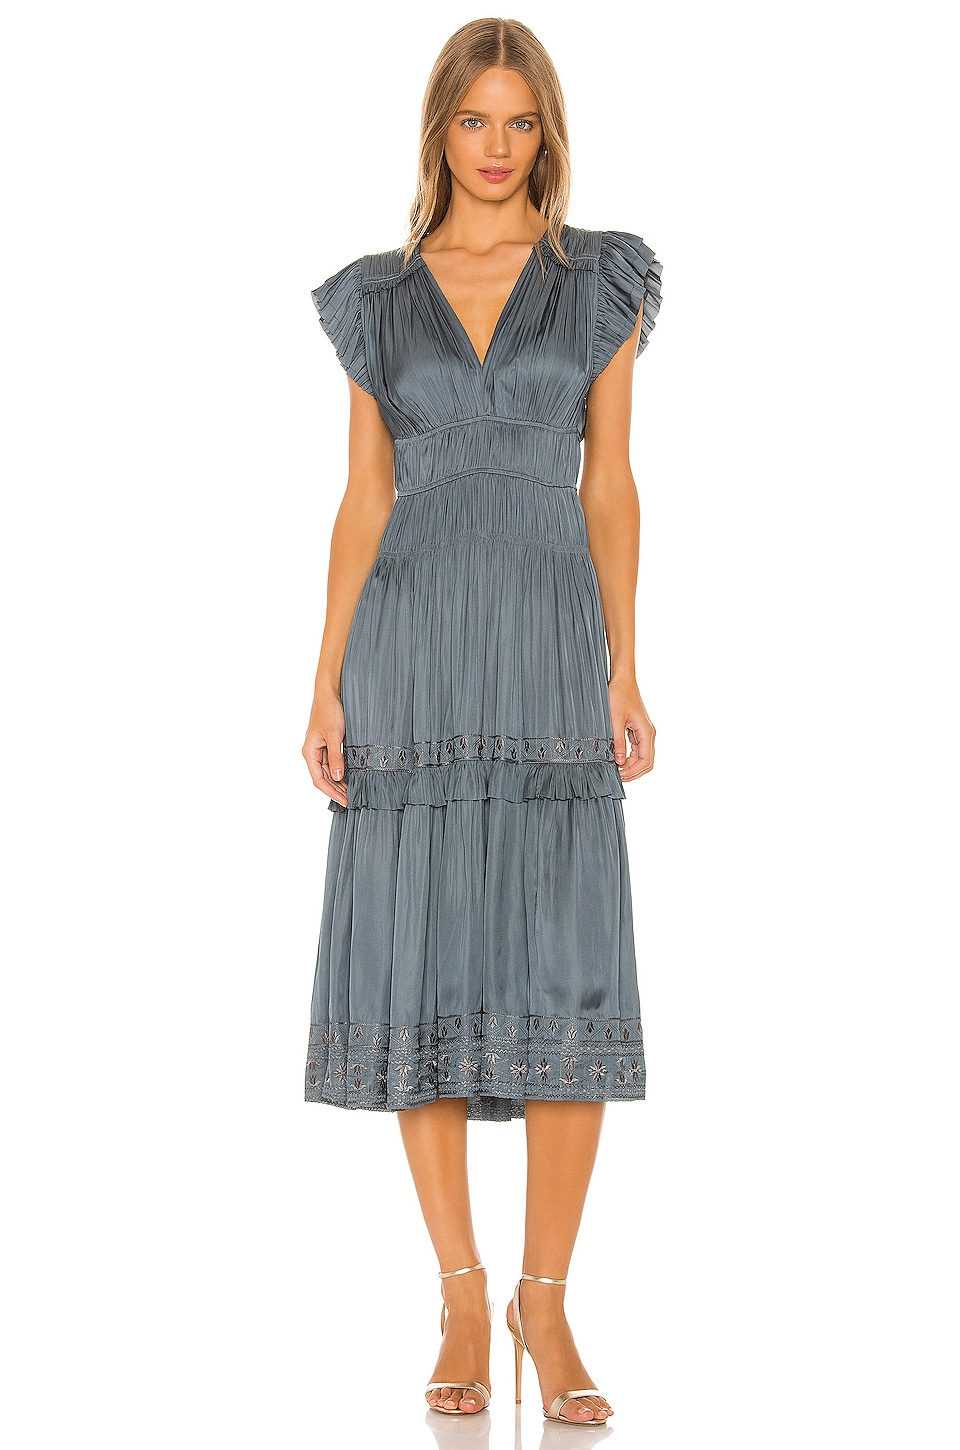 Ulla Johnson Claudia Dress in Slate